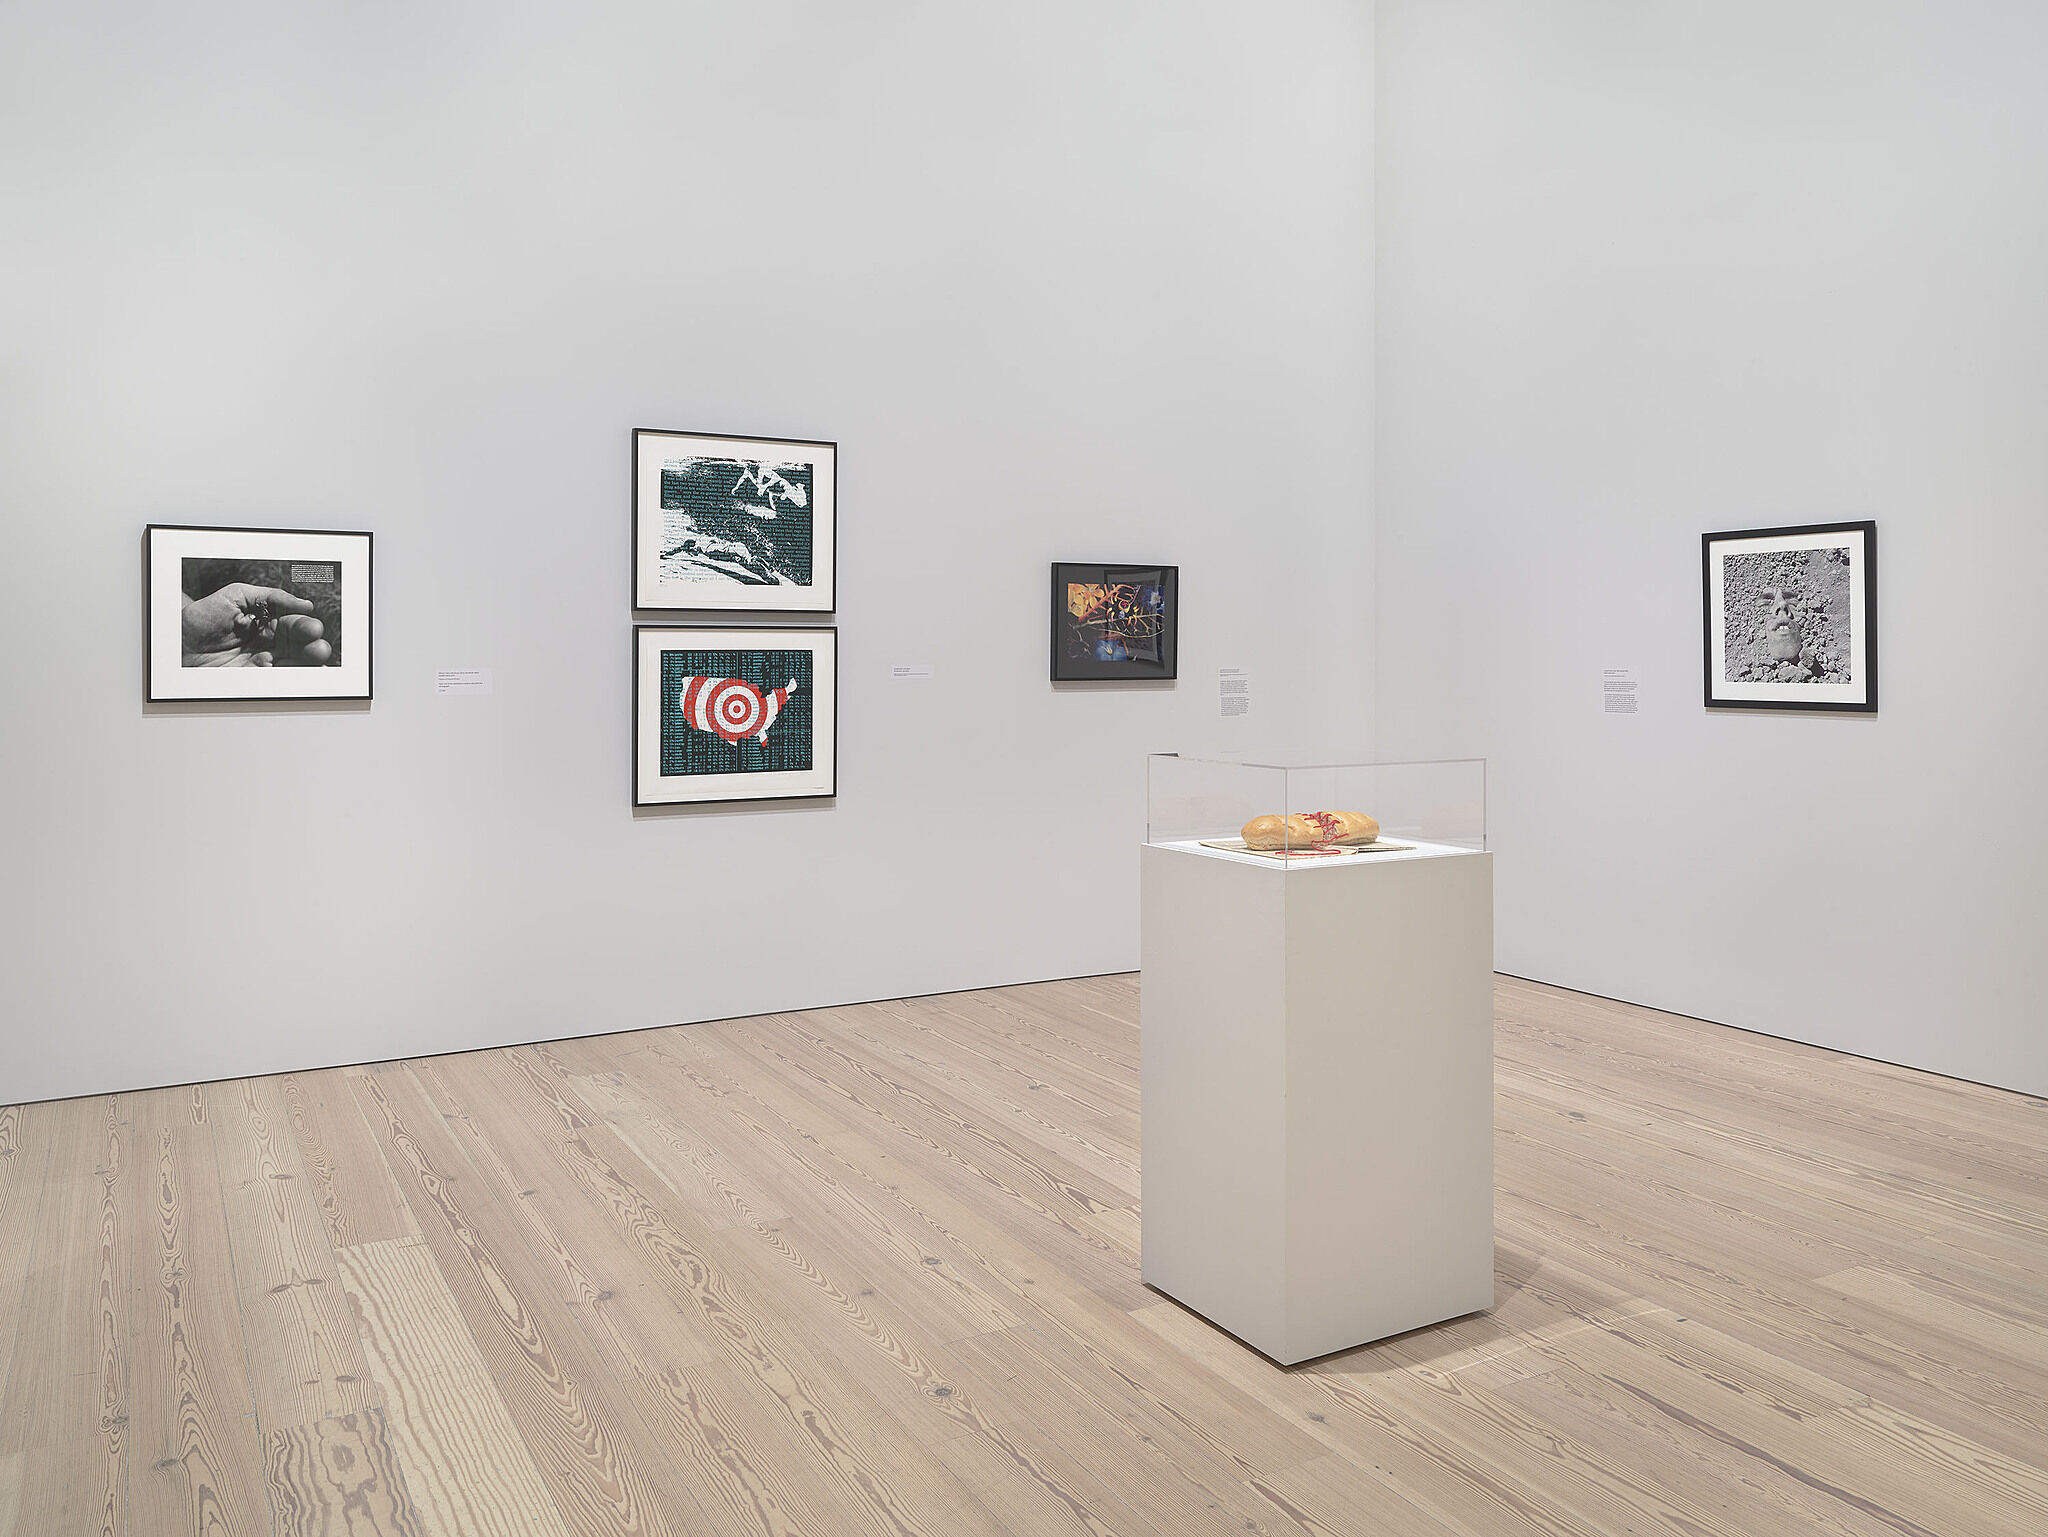 An image of the Whitney galleries with various artworks on the wall and in cases